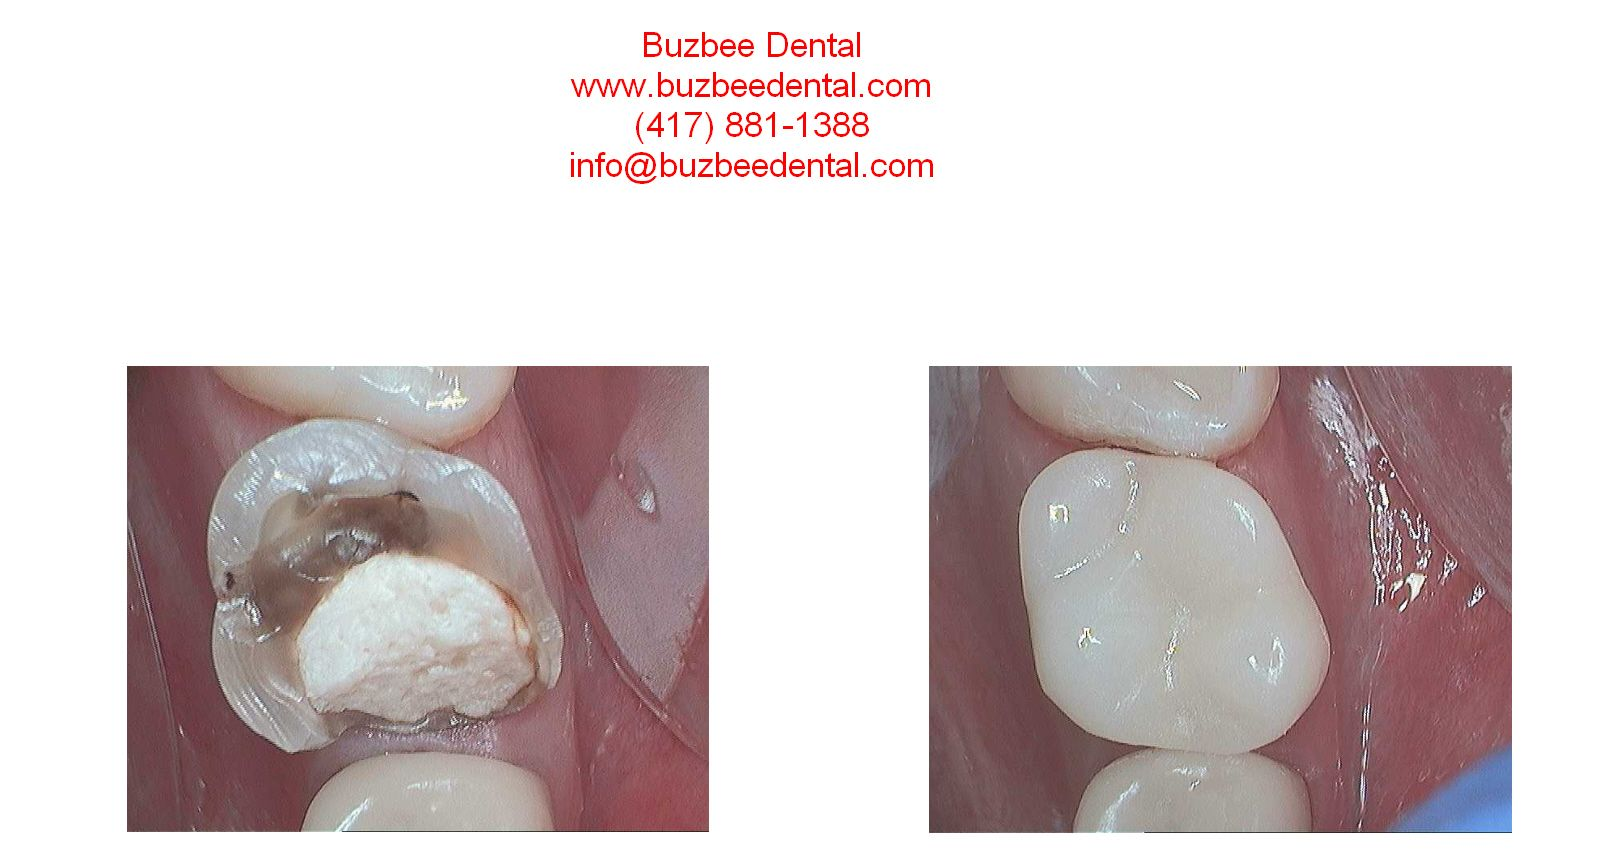 Same Day Digital Dentistry With Cerec The Patient Had A Root Canal In The Tooth And A Temporary Filling In Addition To The Tooth B Root Canal Dentistry Dental